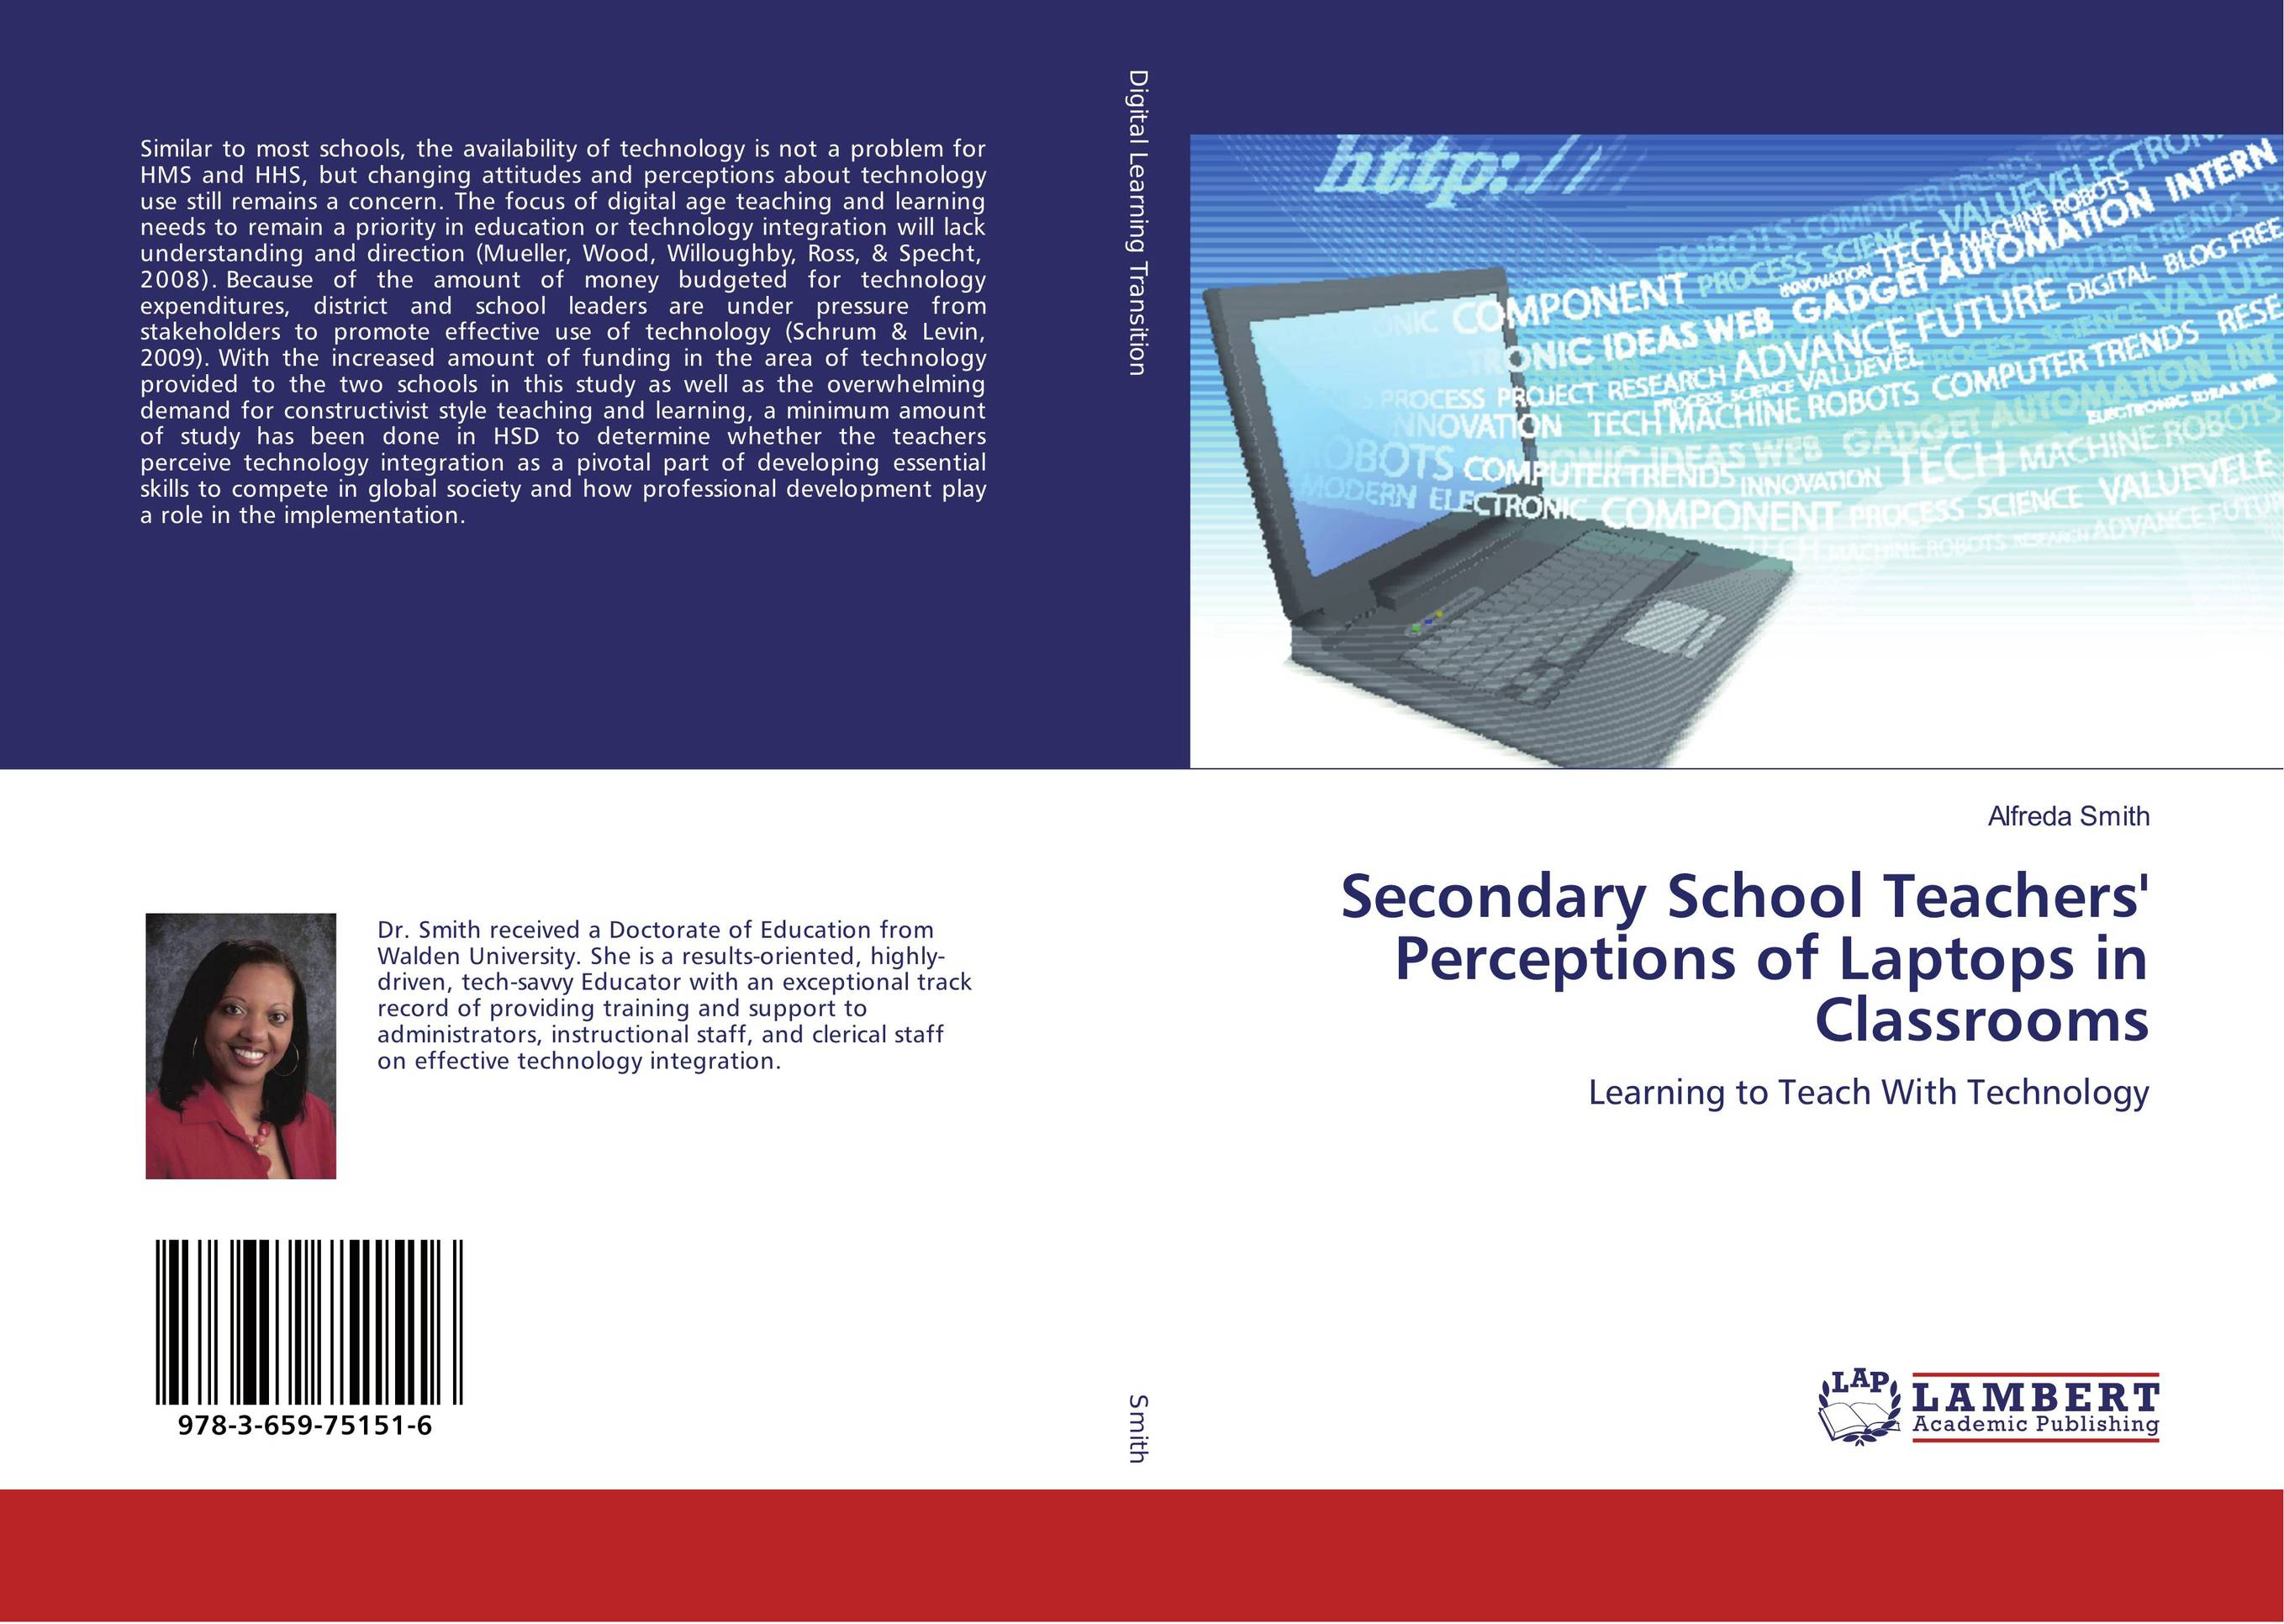 Secondary School Teachers' Perceptions of Laptops in Classrooms teachers as team leaders in a professional learning community